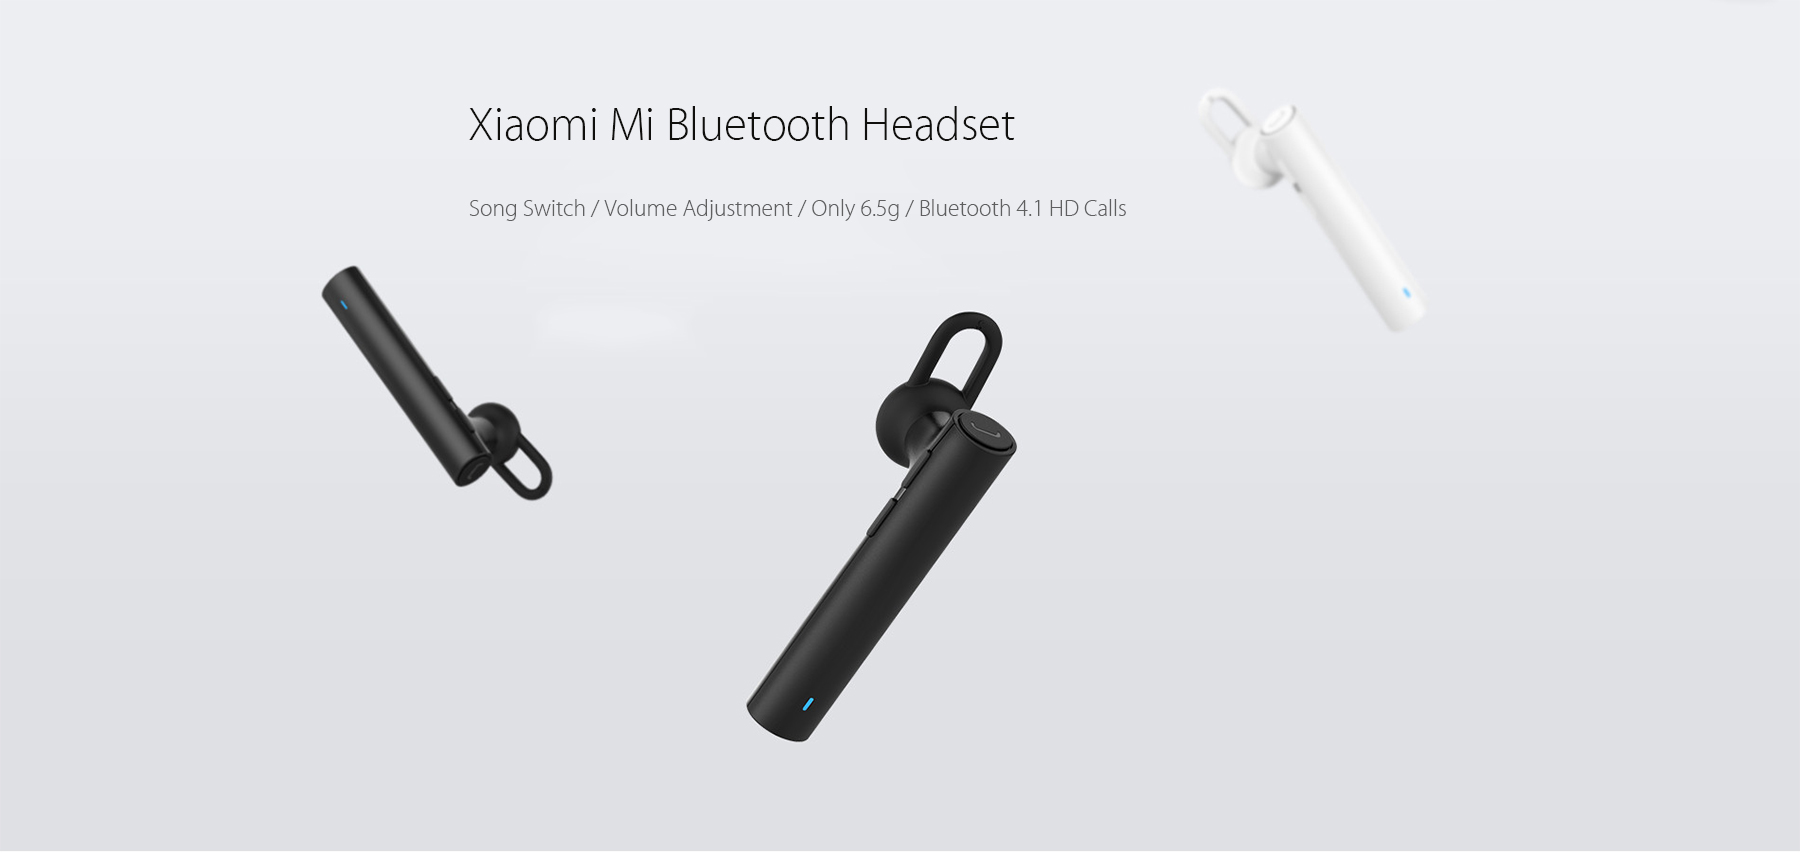 Original Xiaomi Mi LYEJ02LM Bluetooth Headset Built-in Mic Multifunctional On-cord Control